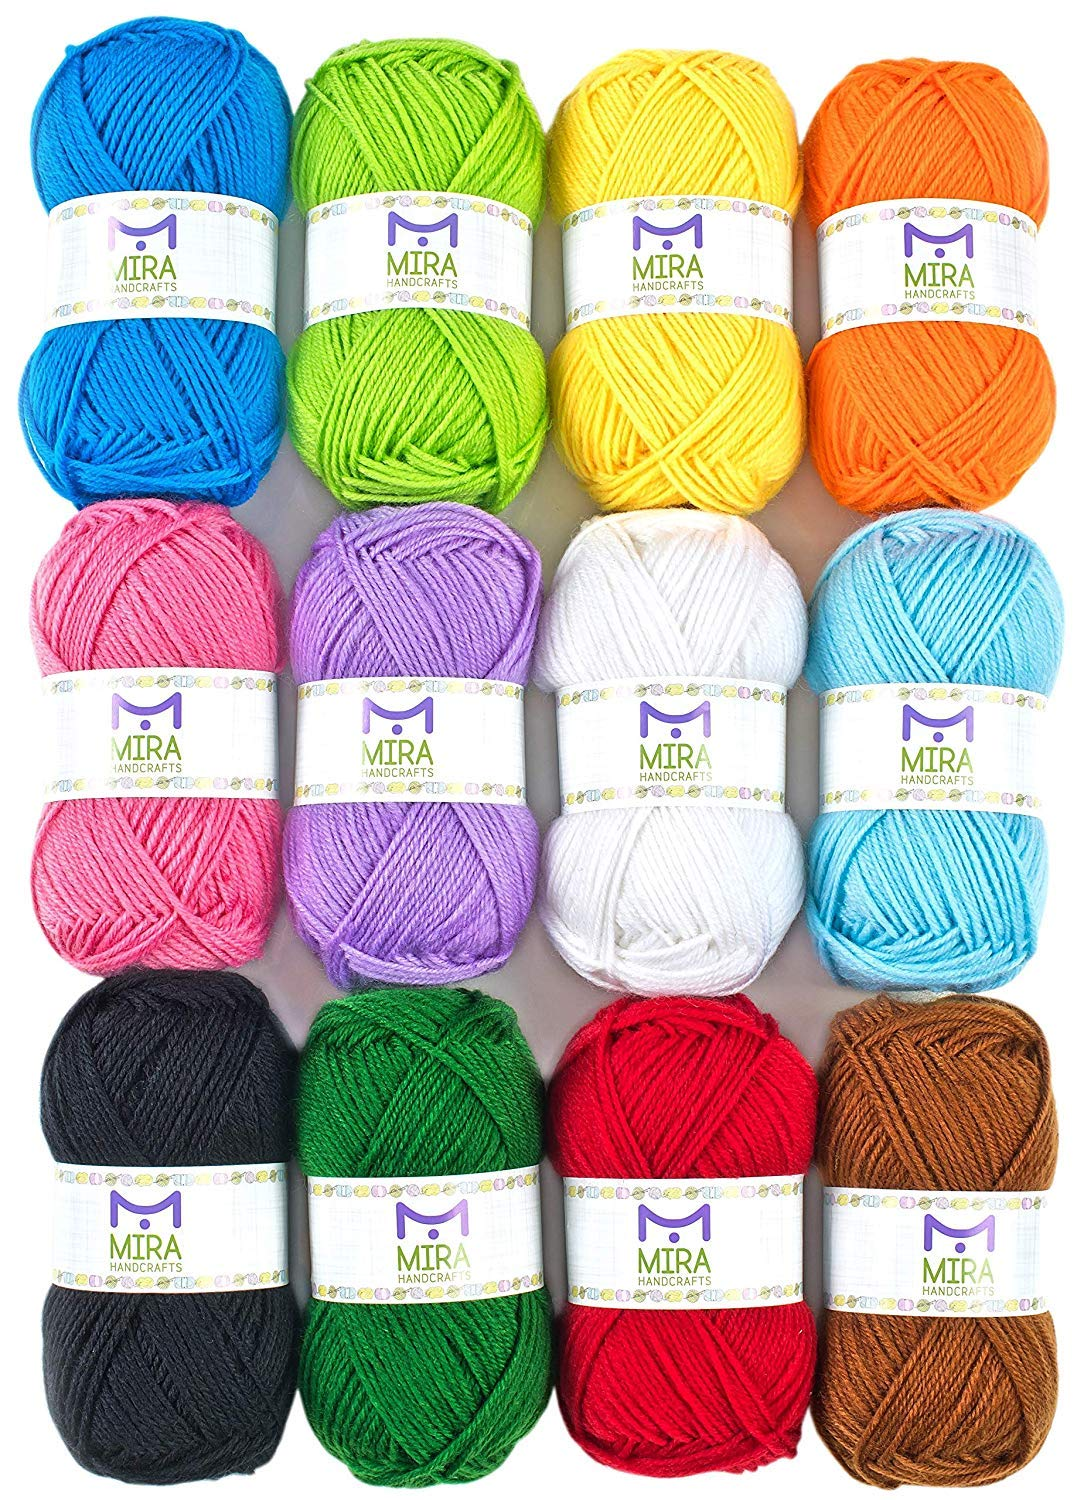 Mira Handcrafts Acrylic 1.76 Ounce(50g) Each Large Yarn Skeins – 12 Multicolor Knitting and Crochet Yarn Bulk – Starter Kit for Colorful Craft - 7 Ebooks with Yarn Patterns